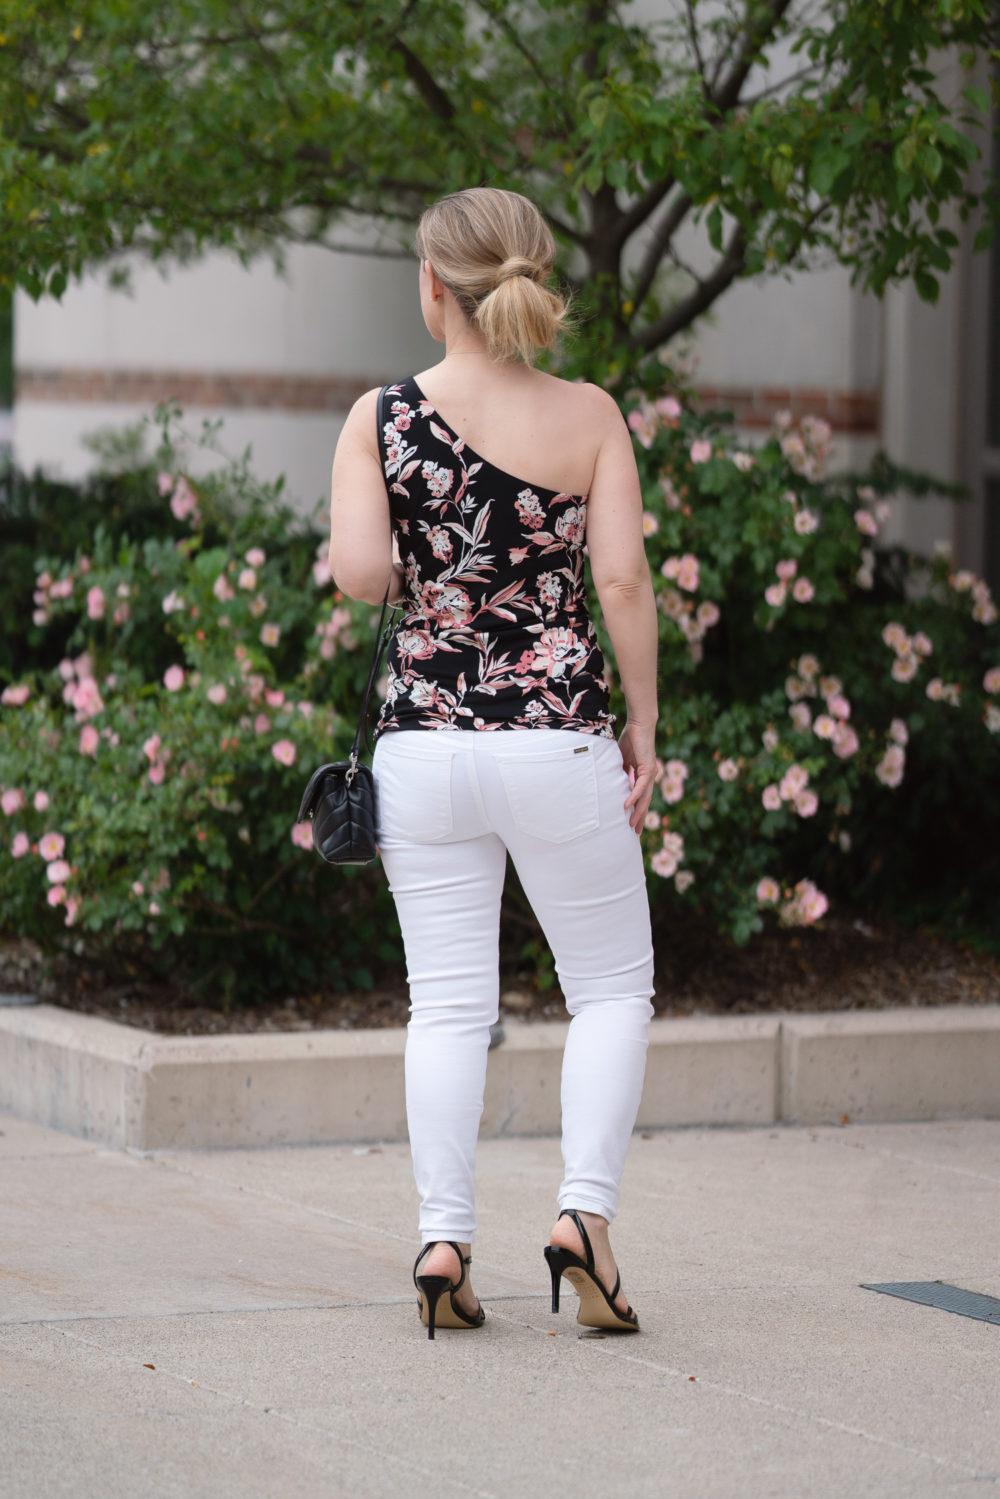 Petite Fashion Blog |WHBM High Rise Skinny Crop Jeans | WHBM Floral One Shoulder Top | WHBM Patent Leather Strappy Heels